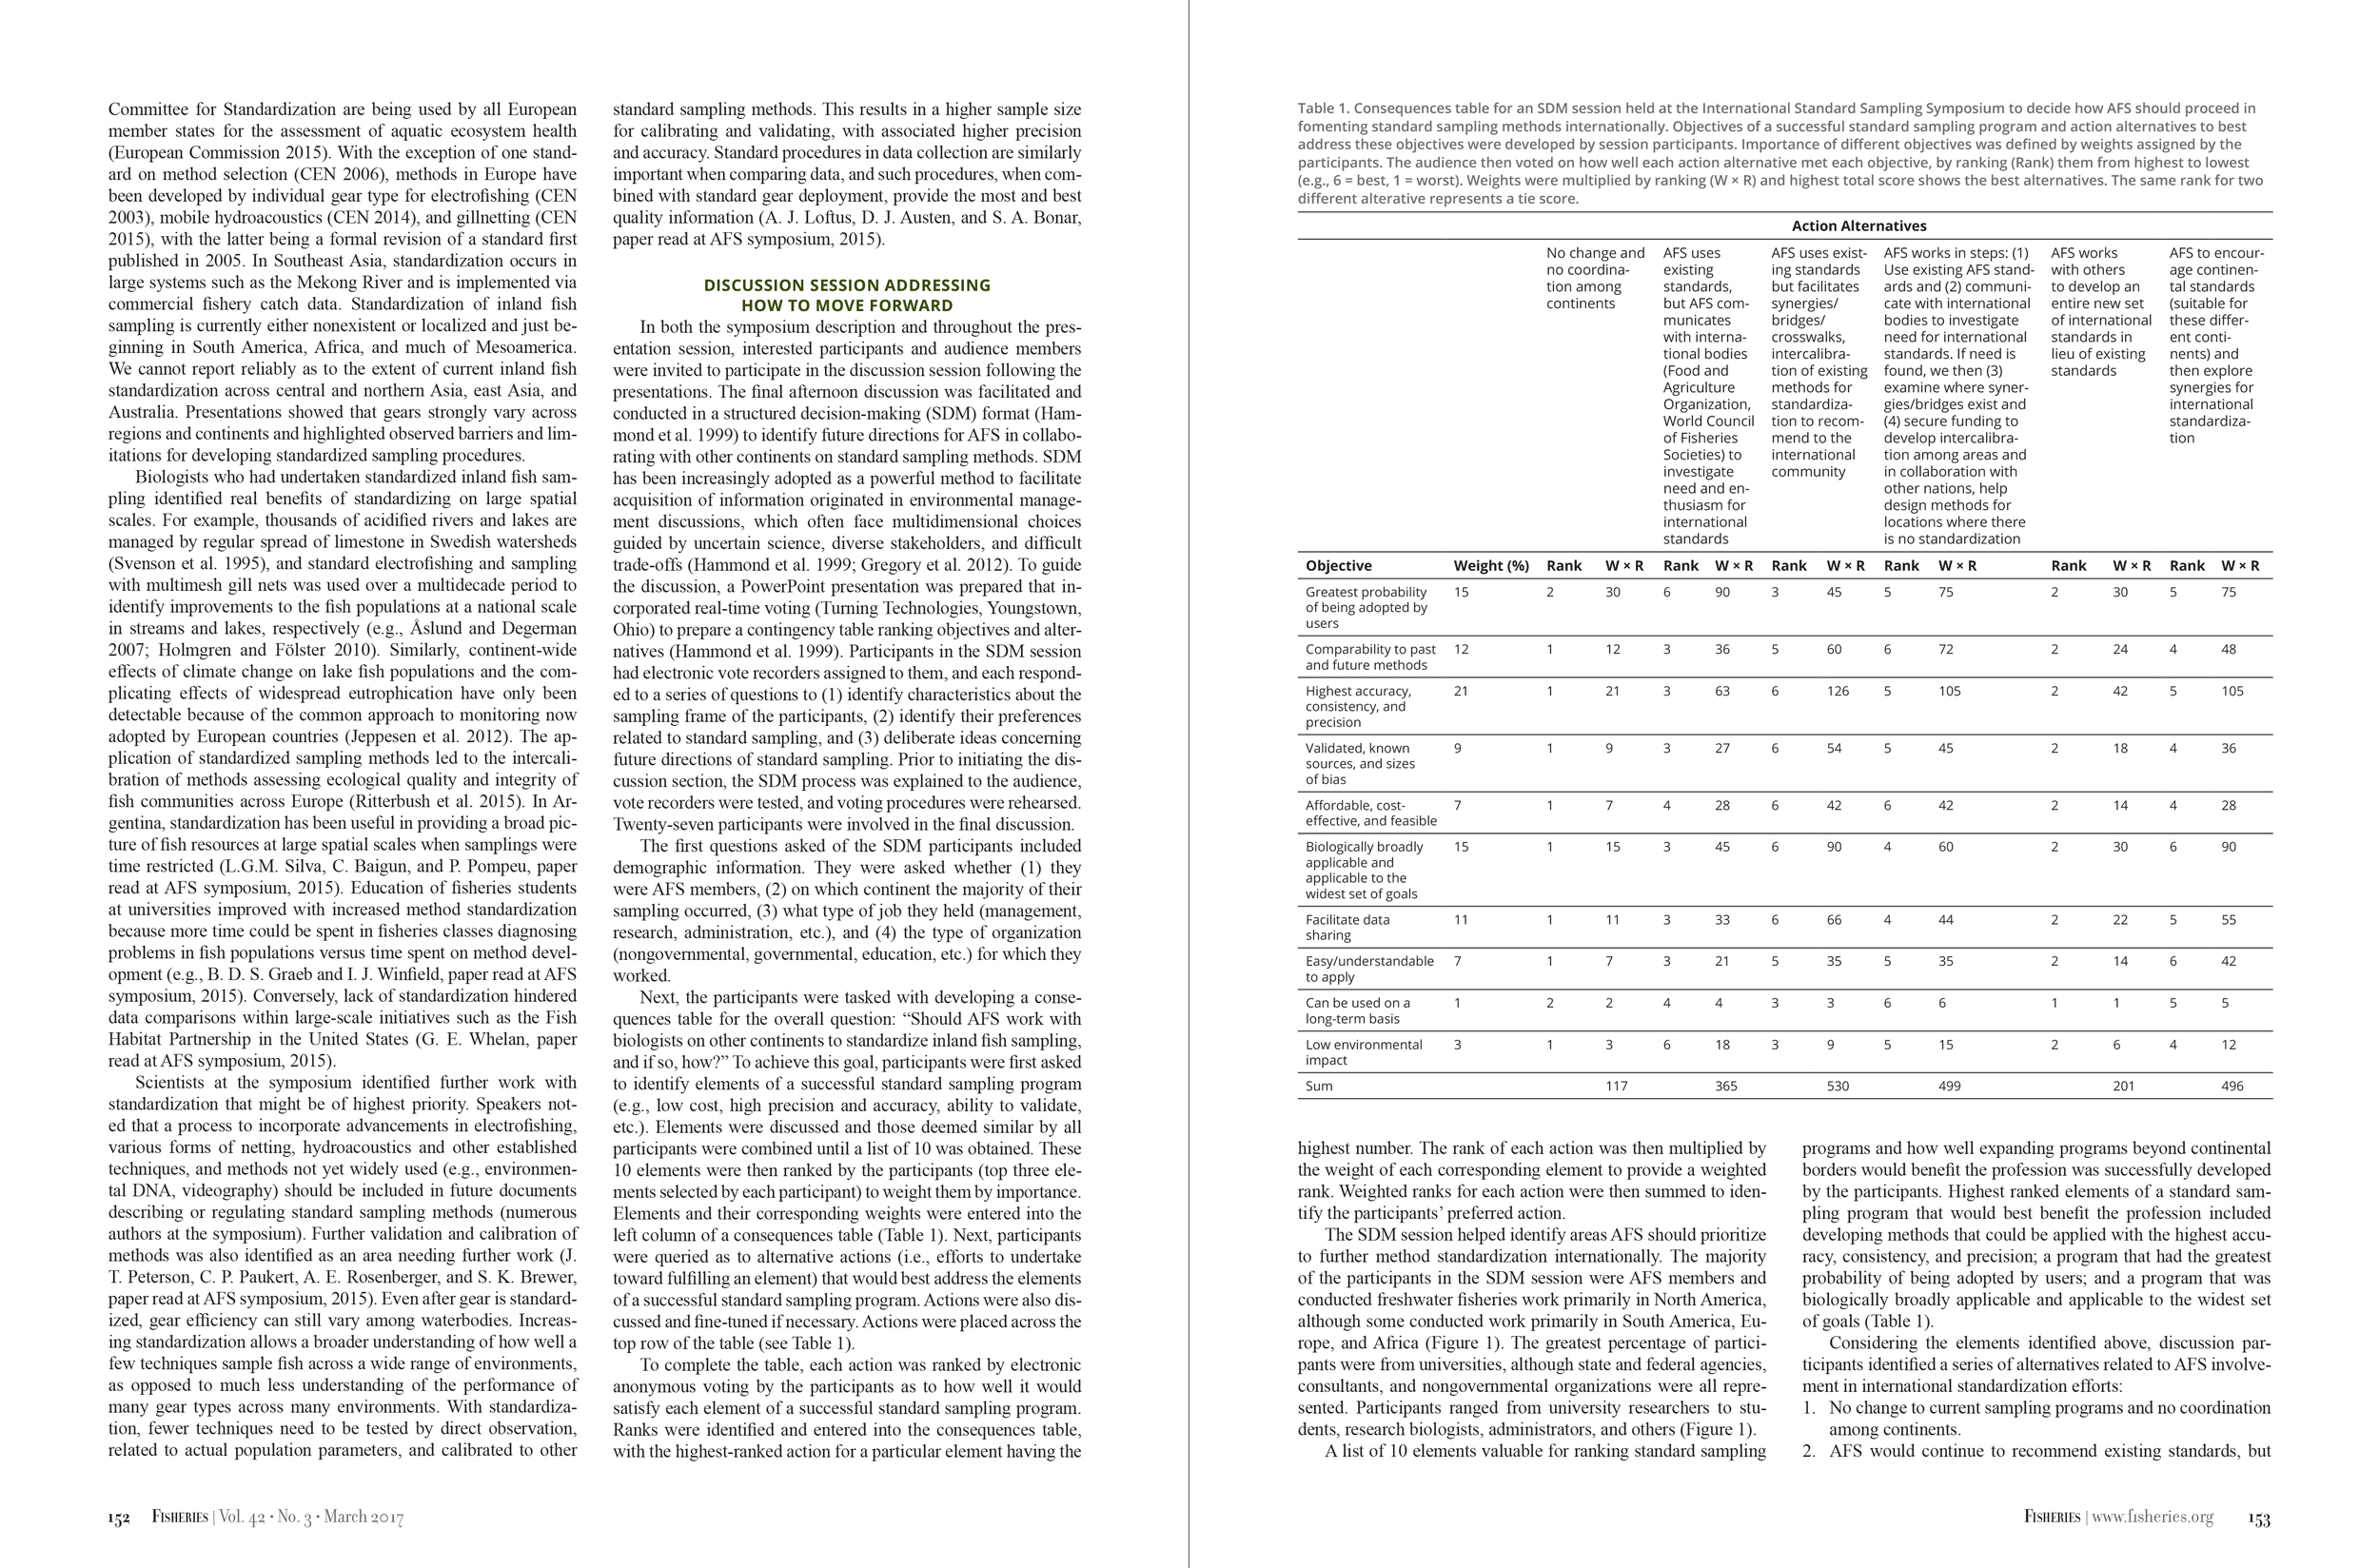 Fisheries Magazine, Interior pages with tables (American Fisheries Society)